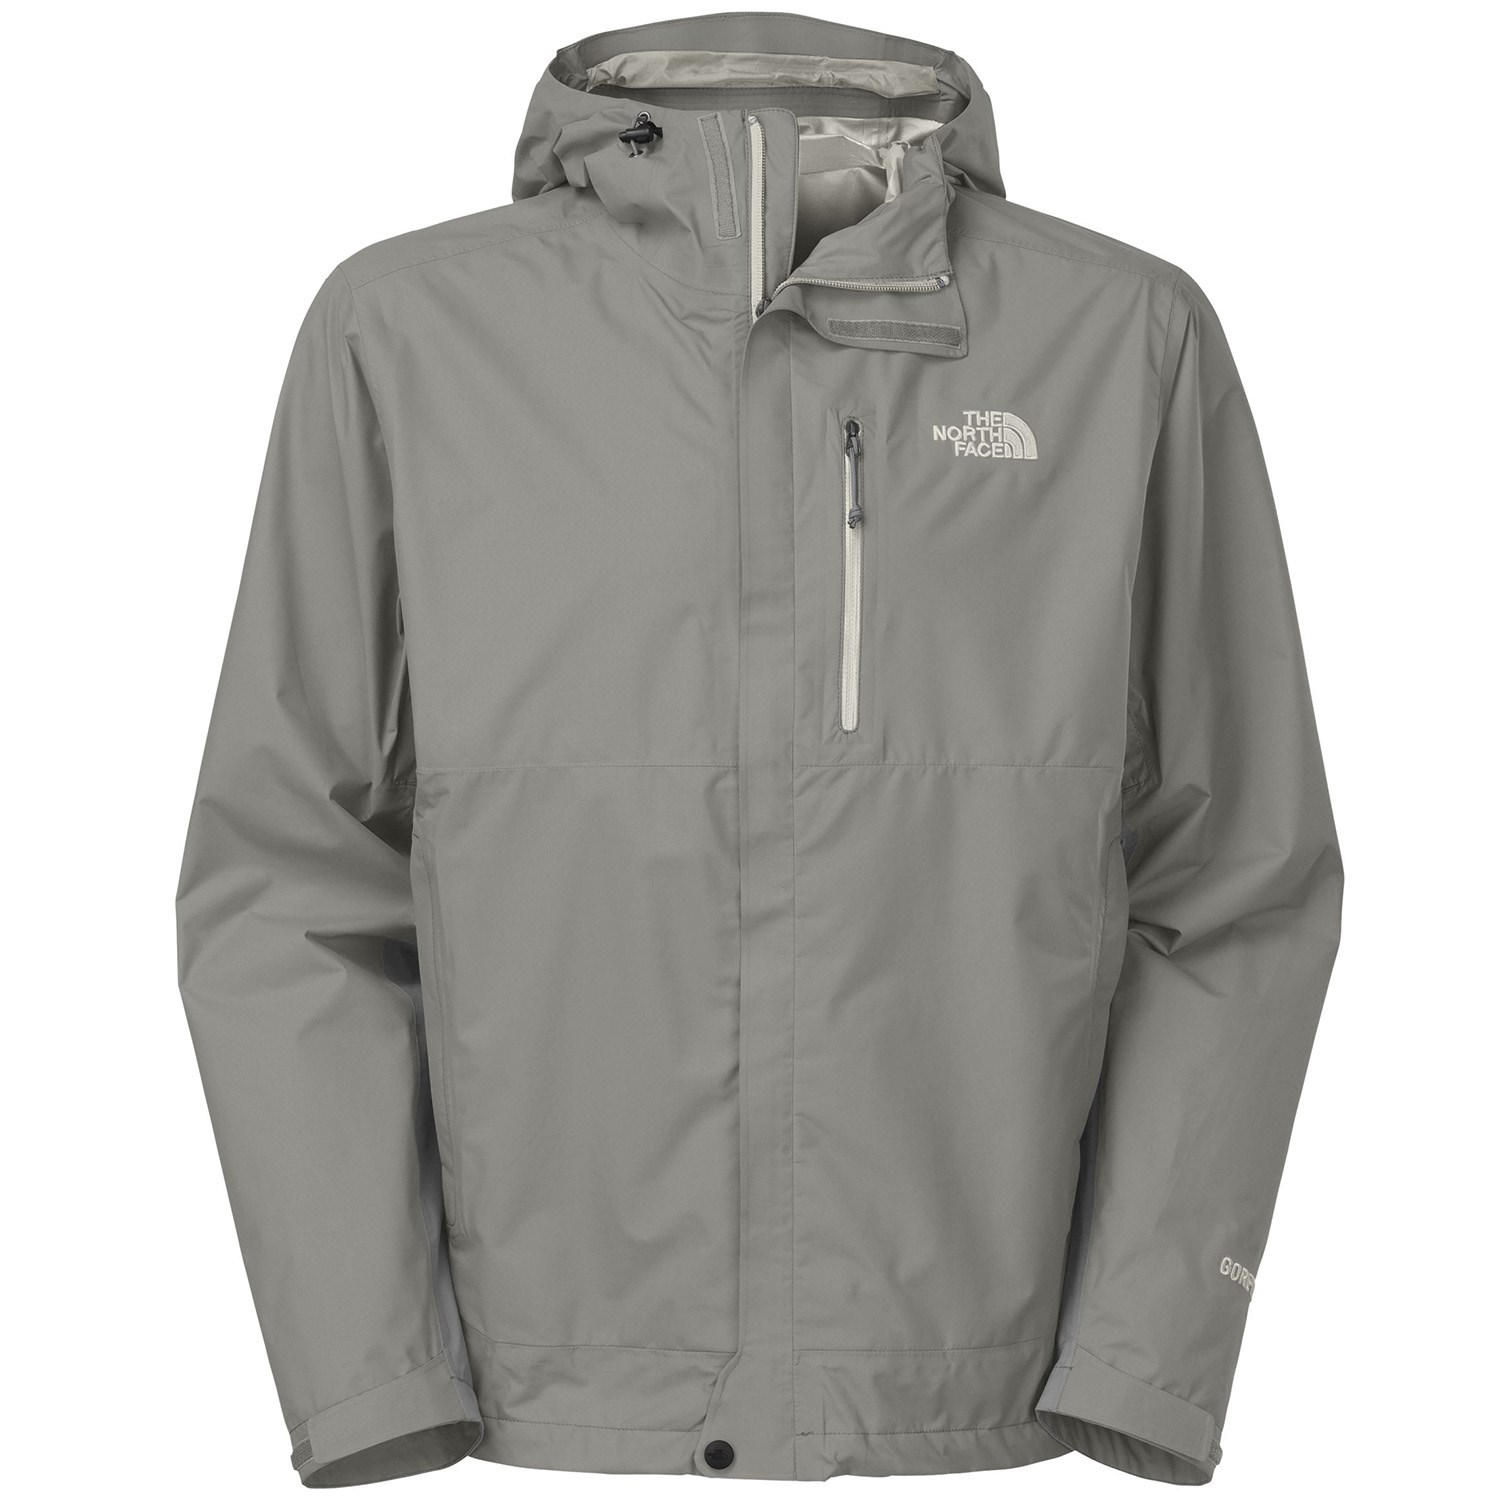 North face winter jacket singapore